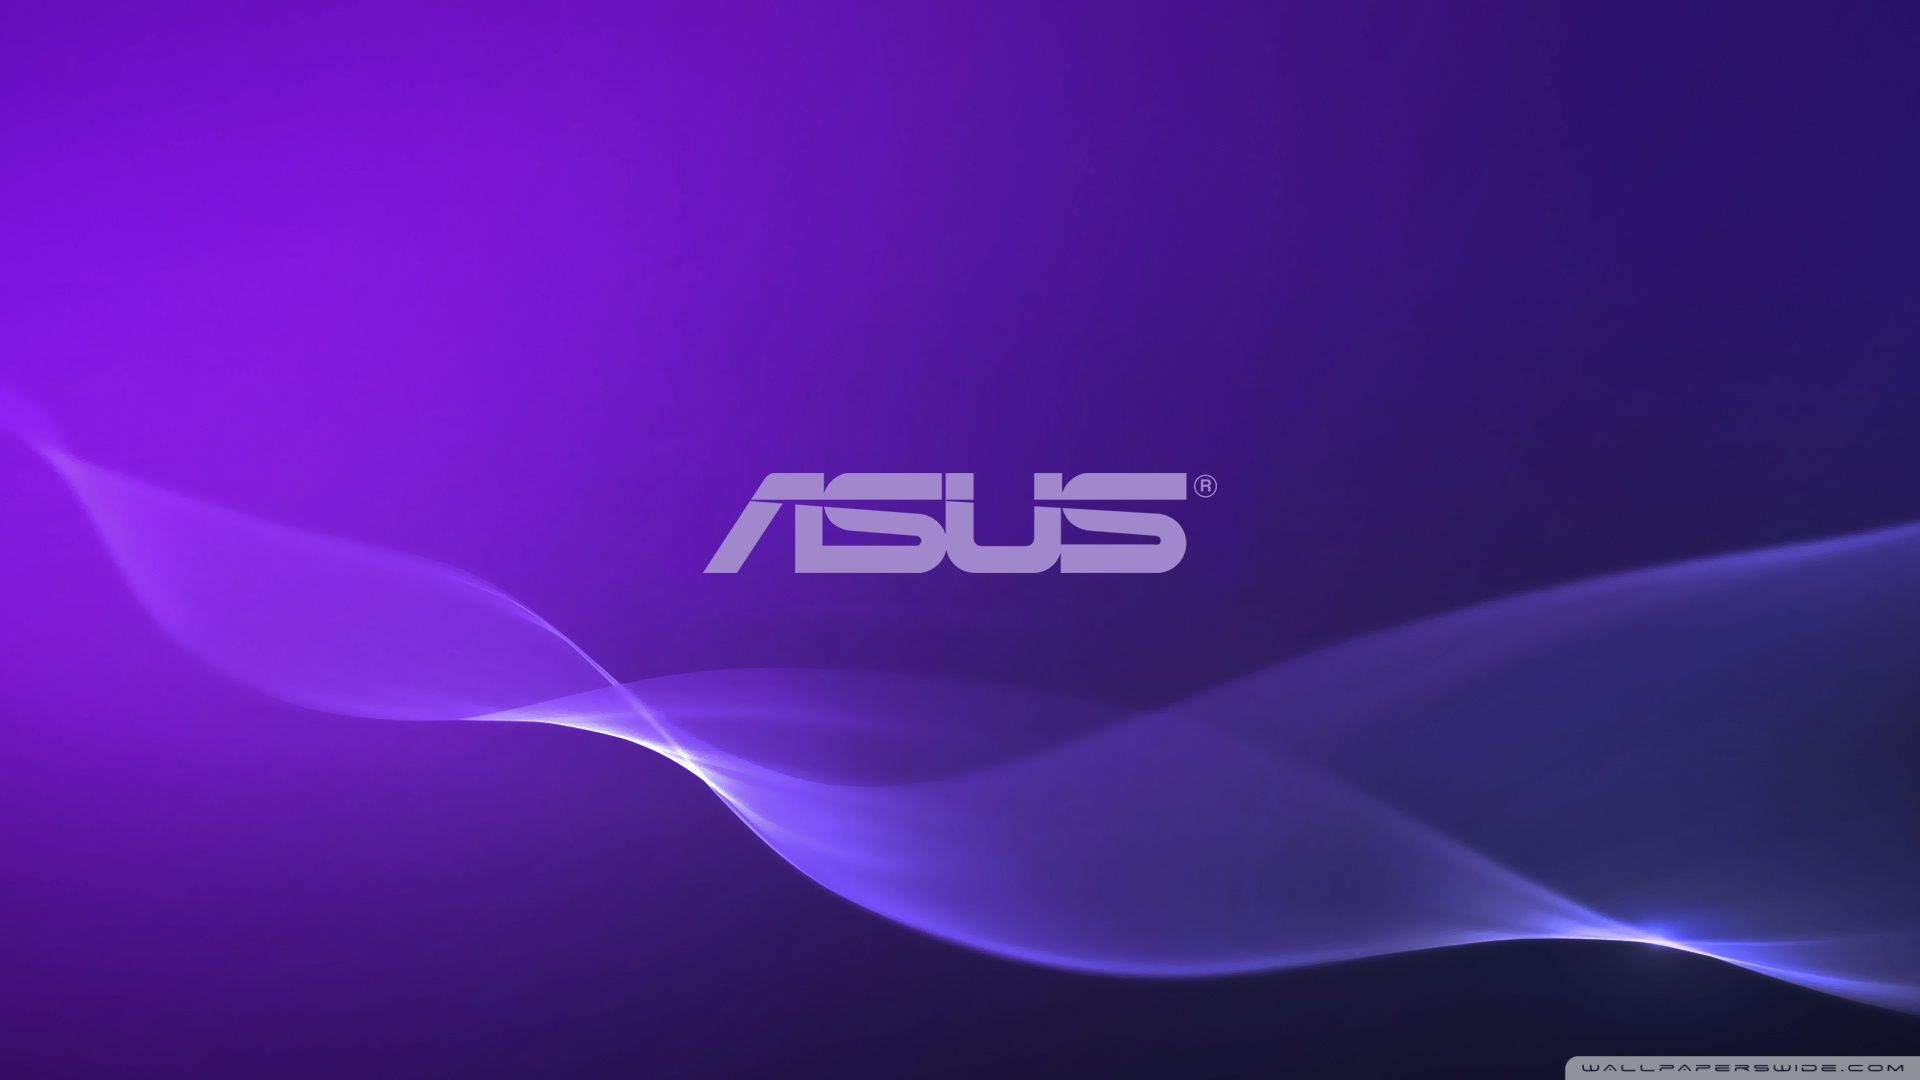 Asus Wallpapers Top Free Asus Backgrounds Wallpaperaccess